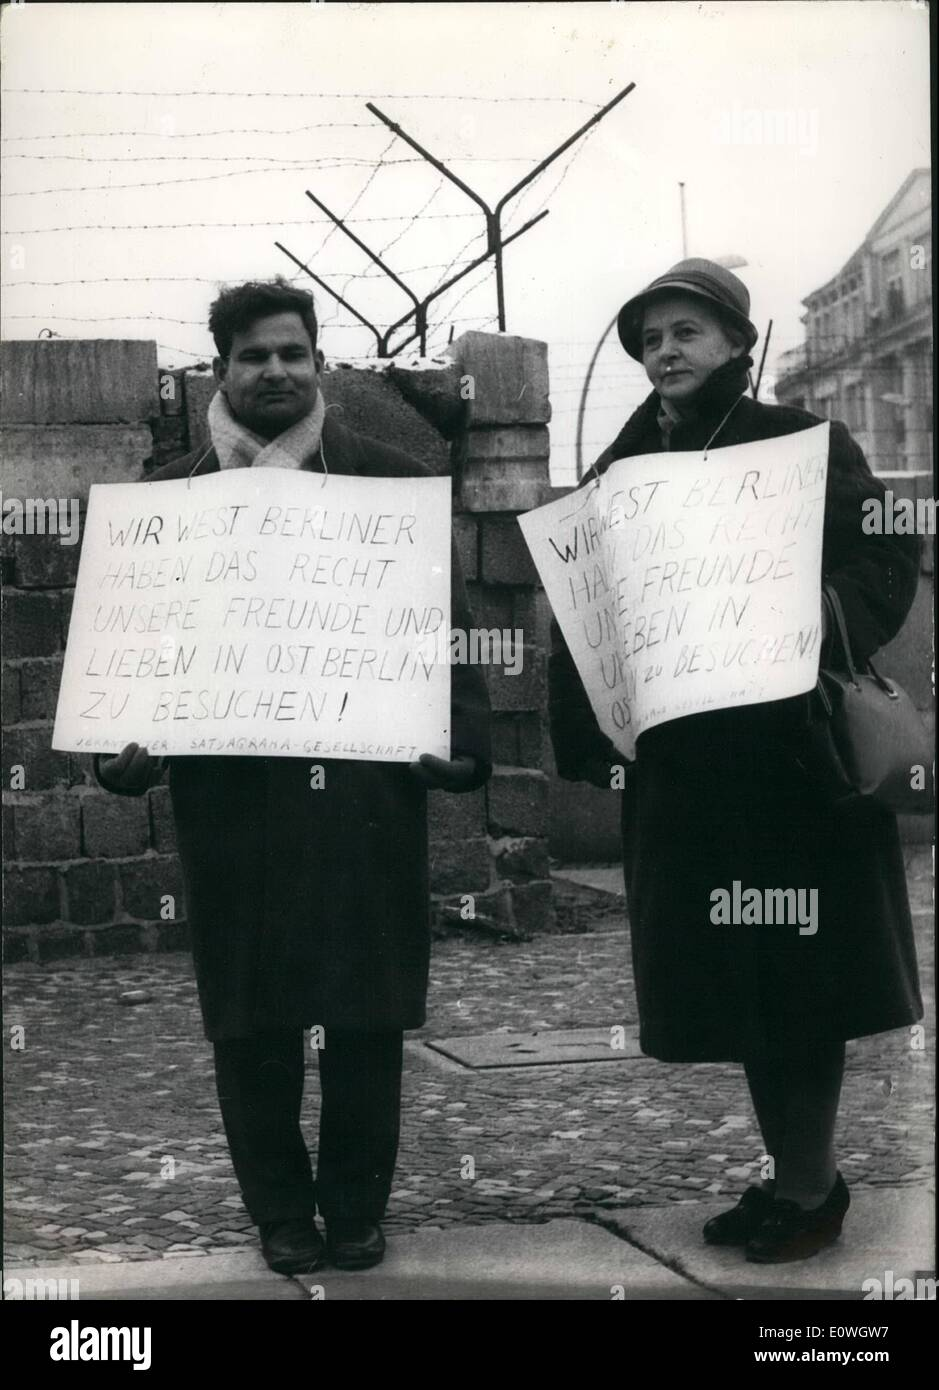 Dec. 12, 1962 - The right to see family and friends: on Wednesday (19.12) two Westberliner demonstraters stood by the wall in Chausseestrasse (Westberlin), to demonstrate against the East-Germany government line, in not letting people from the west visit friends and relations in the east. PHoto shows Nath Zutshi a chemical engineer on the left and a woman companion stand with plackards by the wall in Chausseestrassa today. Stock Photo